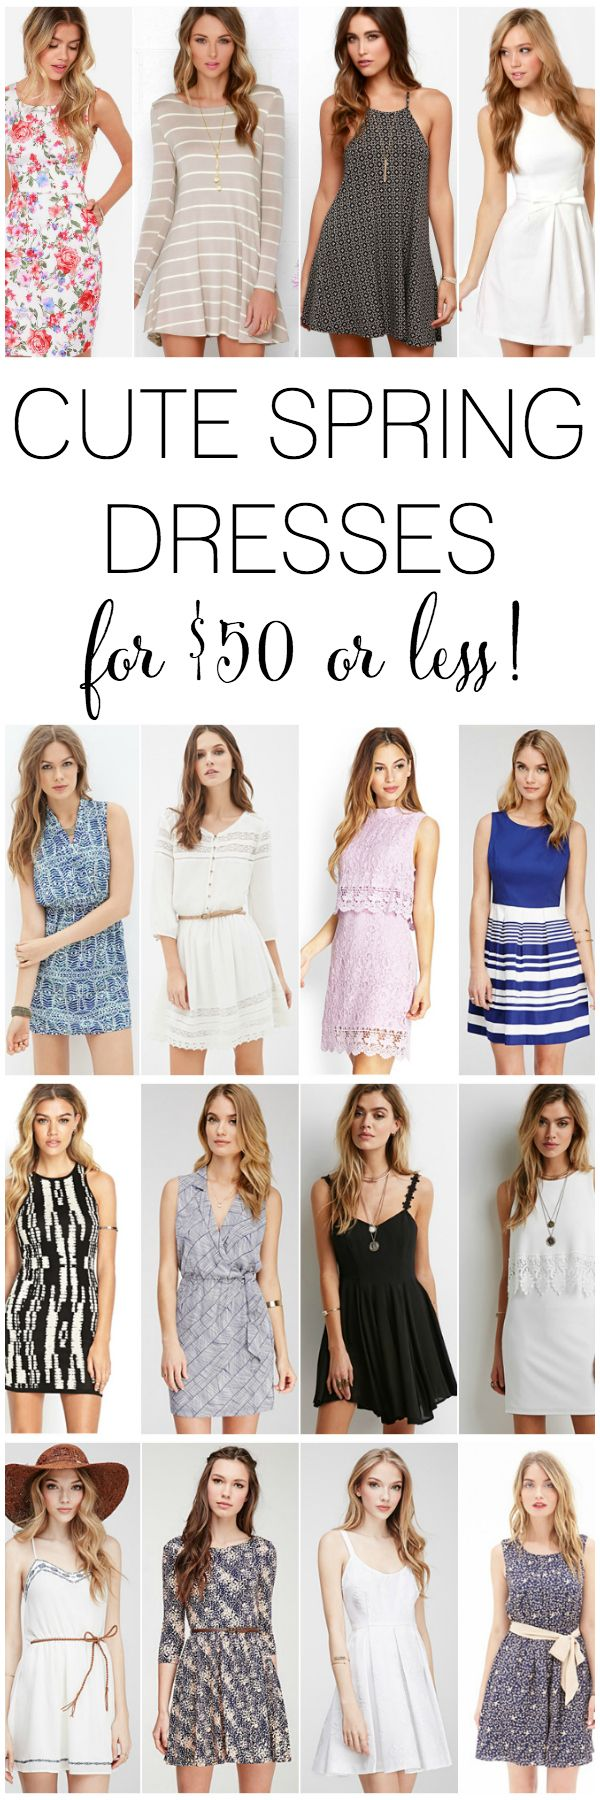 The cutest dresses for spring - all under $50!